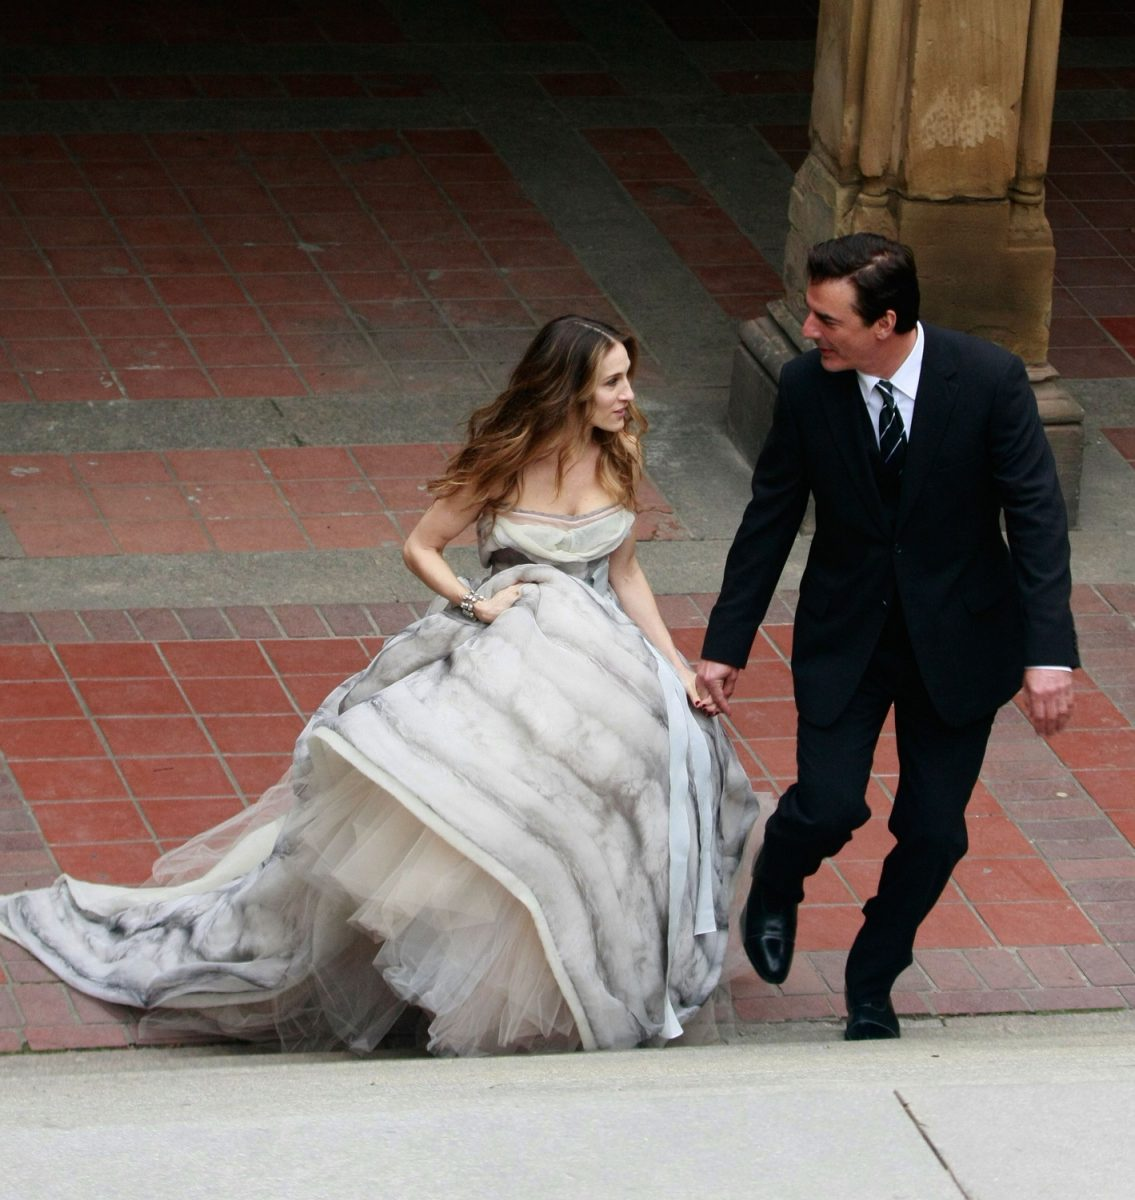 Sarah Jessica Parker and Chris North are photographed together in Central Park prior to the release of 'Sex and the City: The Movie'